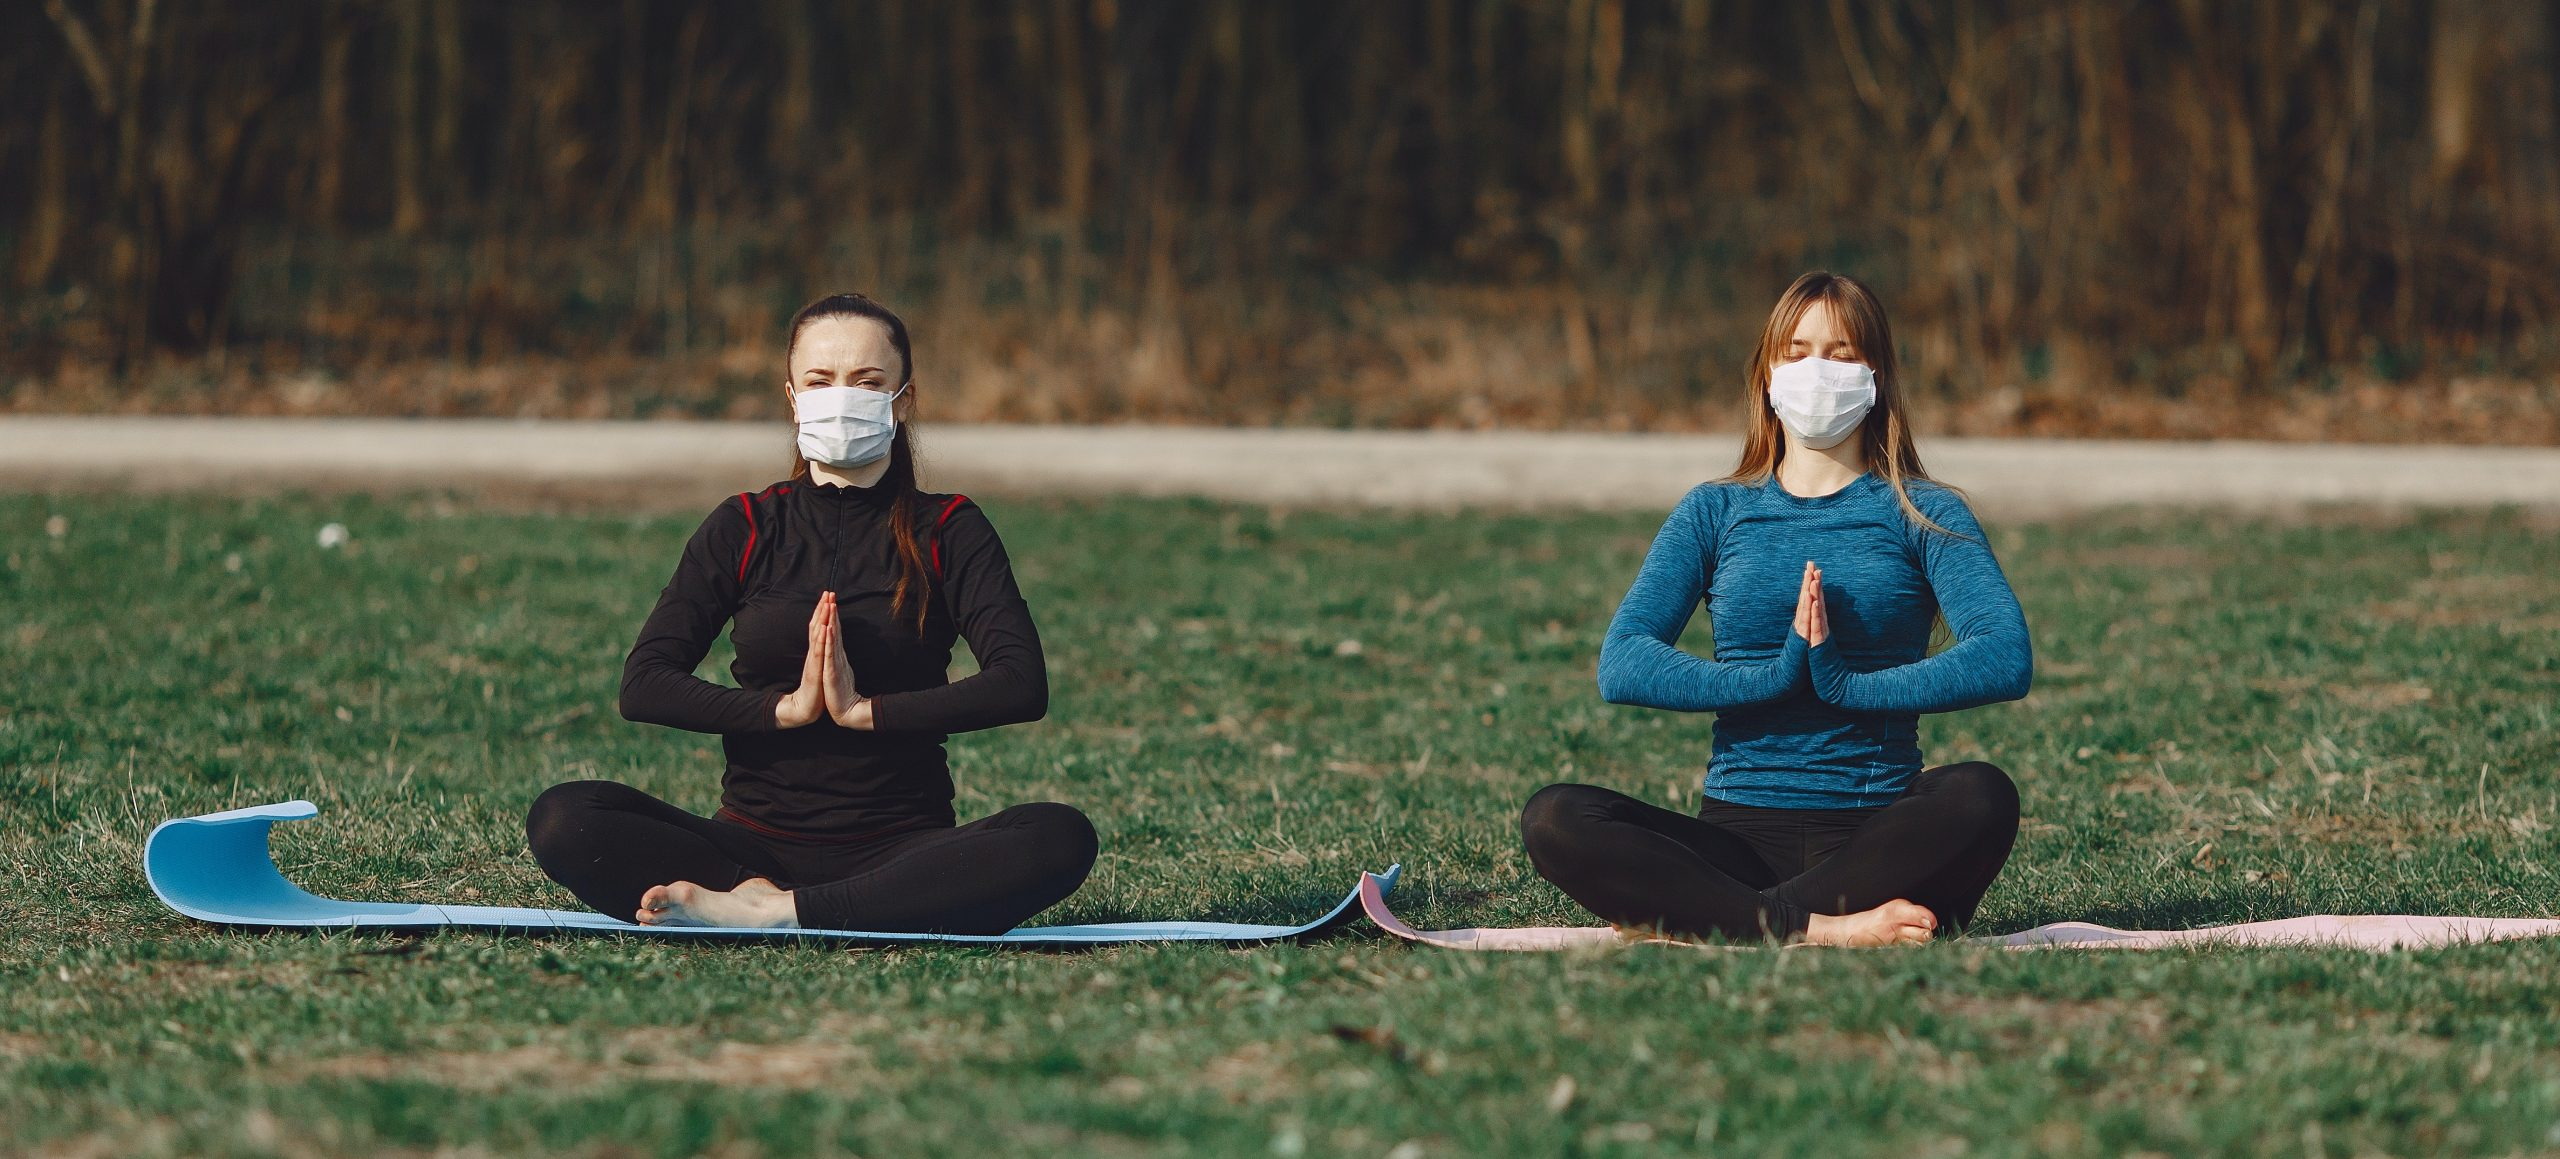 Two women do yoga outside. They are six feet apart and wear face masks.